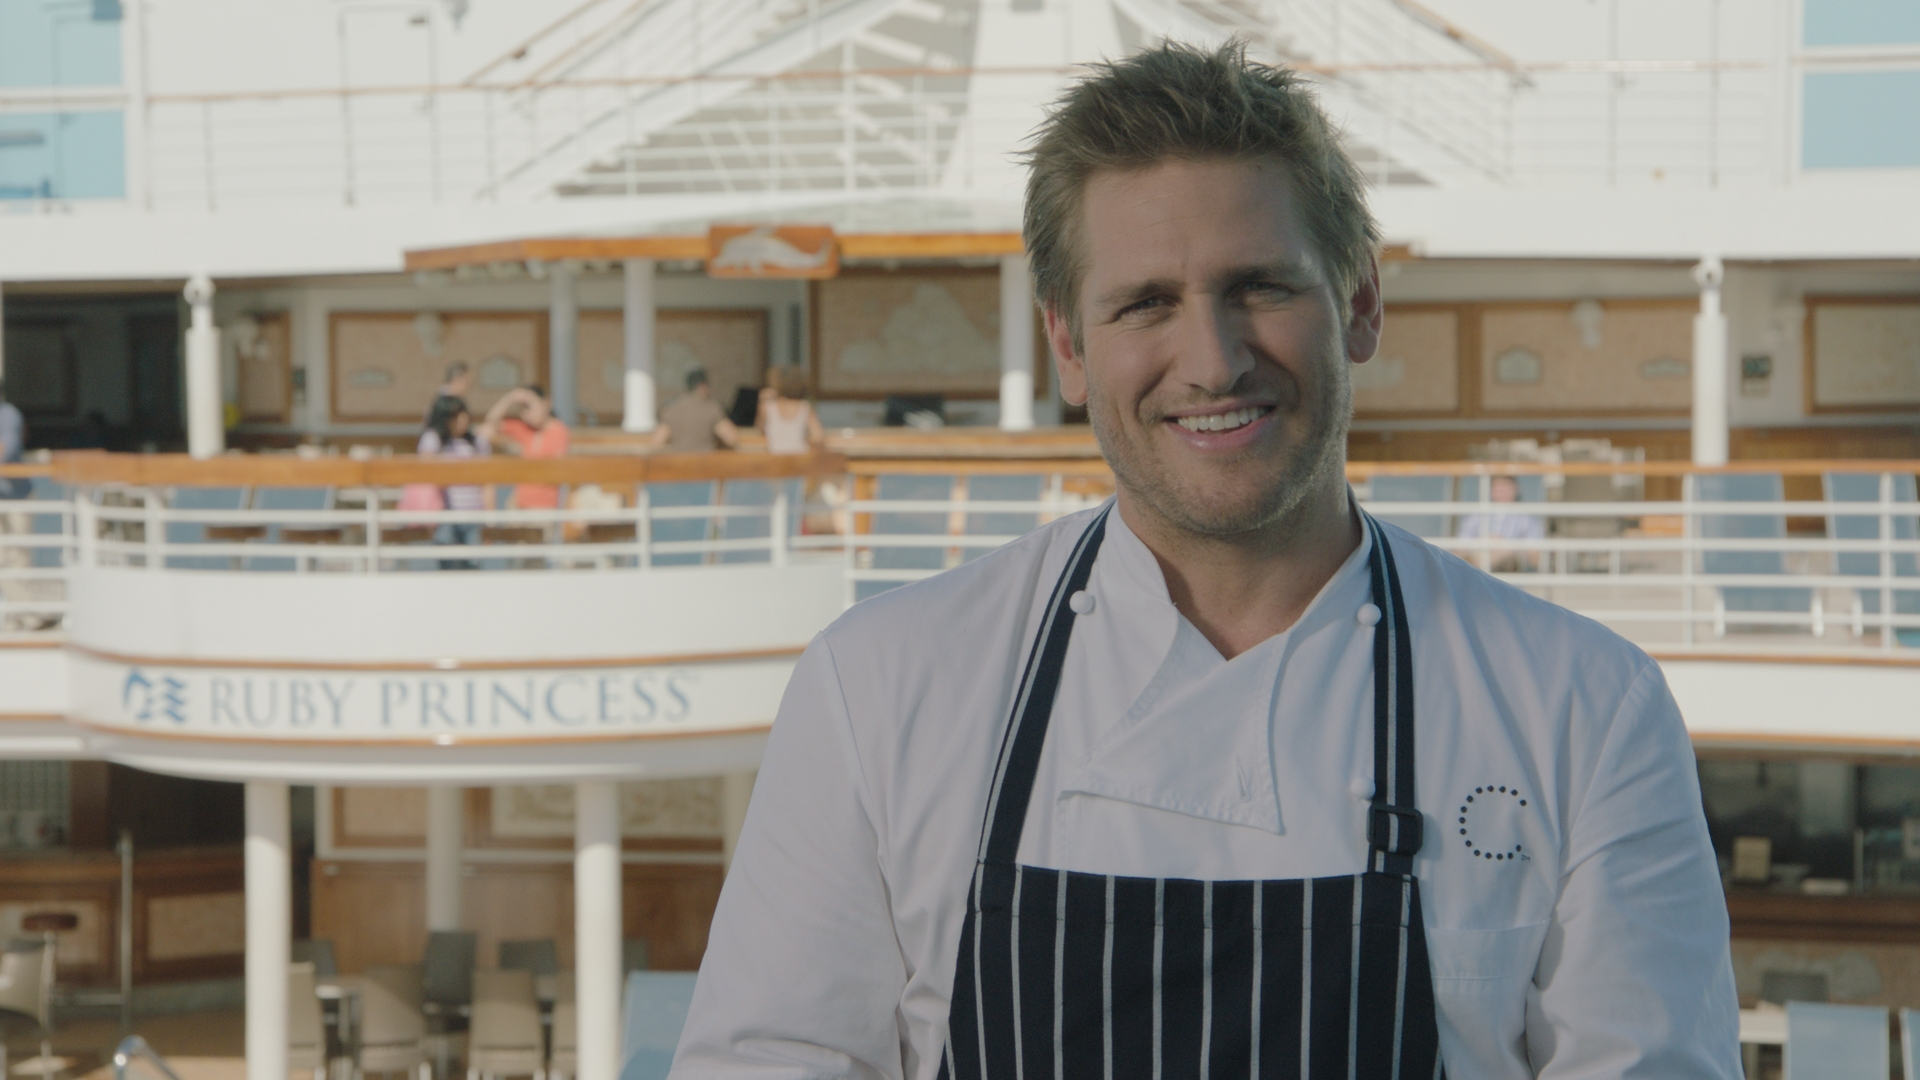 Chef Stone aboard the Ruby Princess.